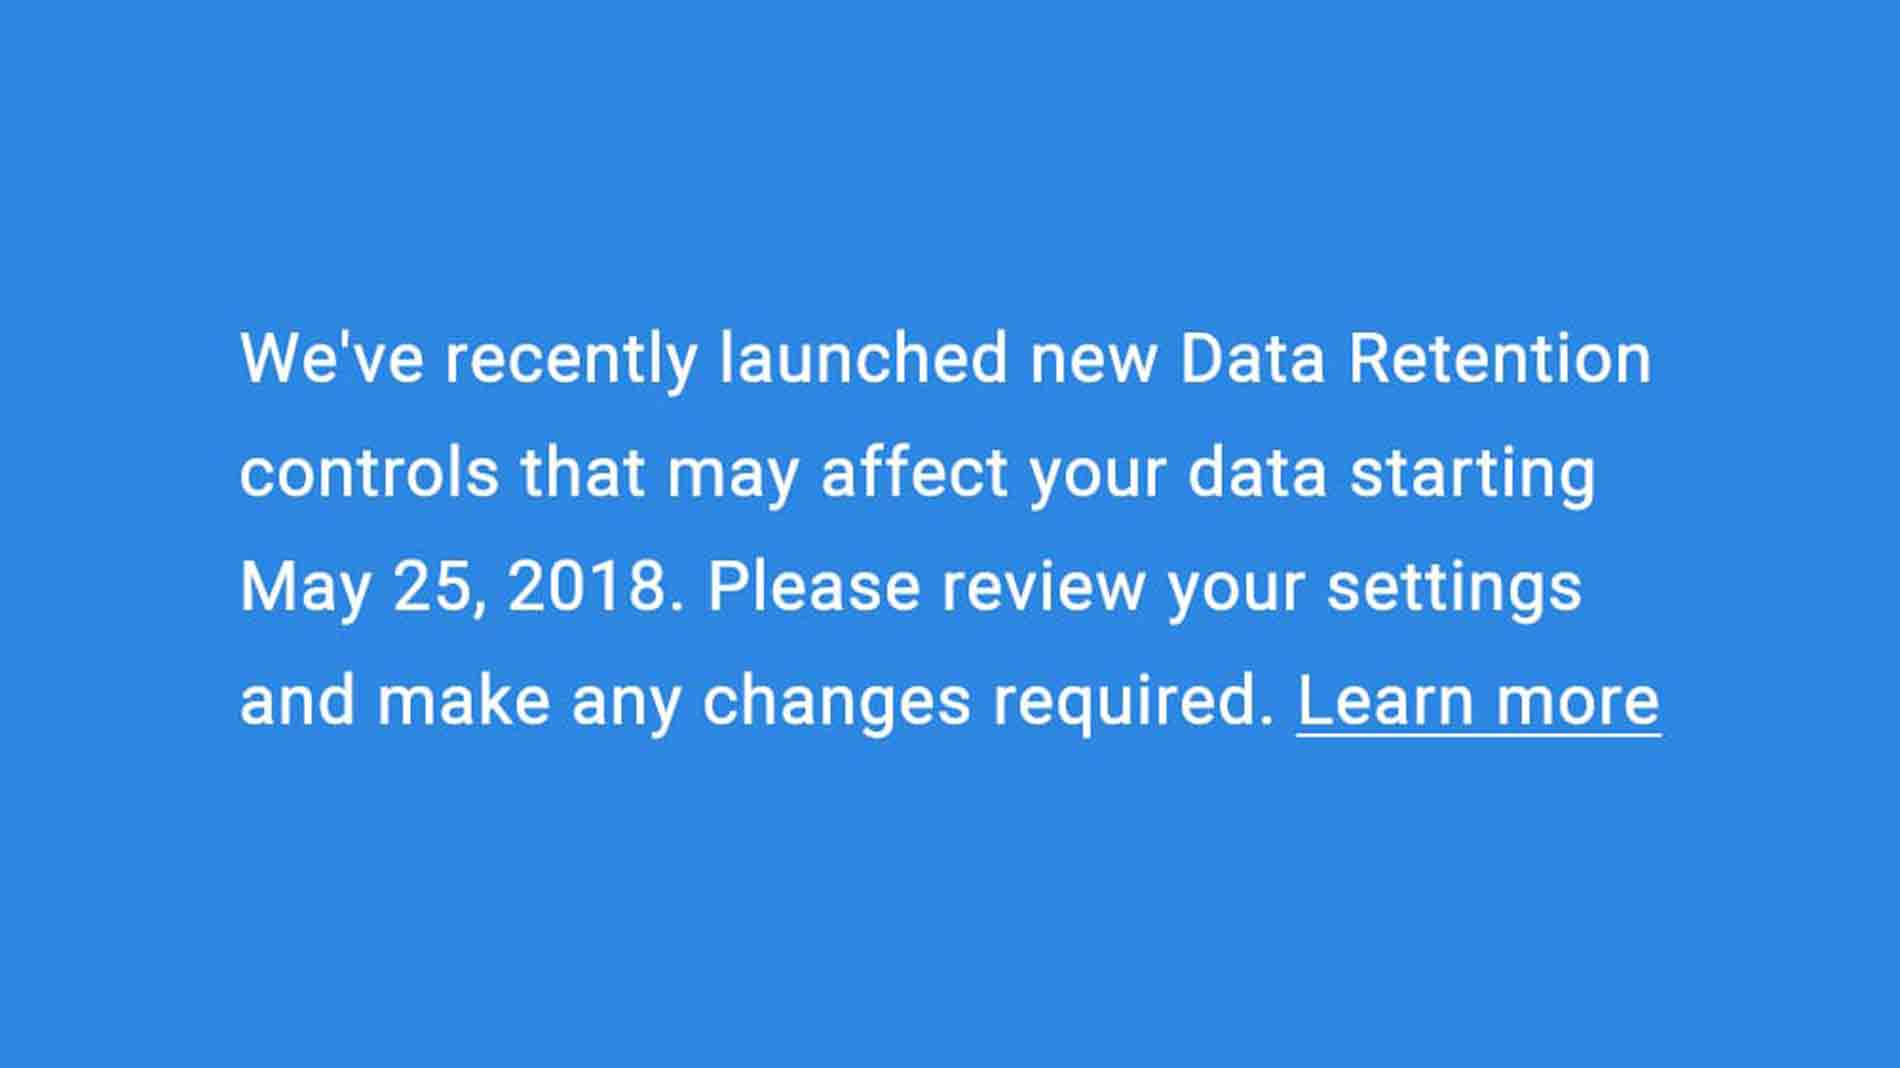 analytics data retention controls announcement